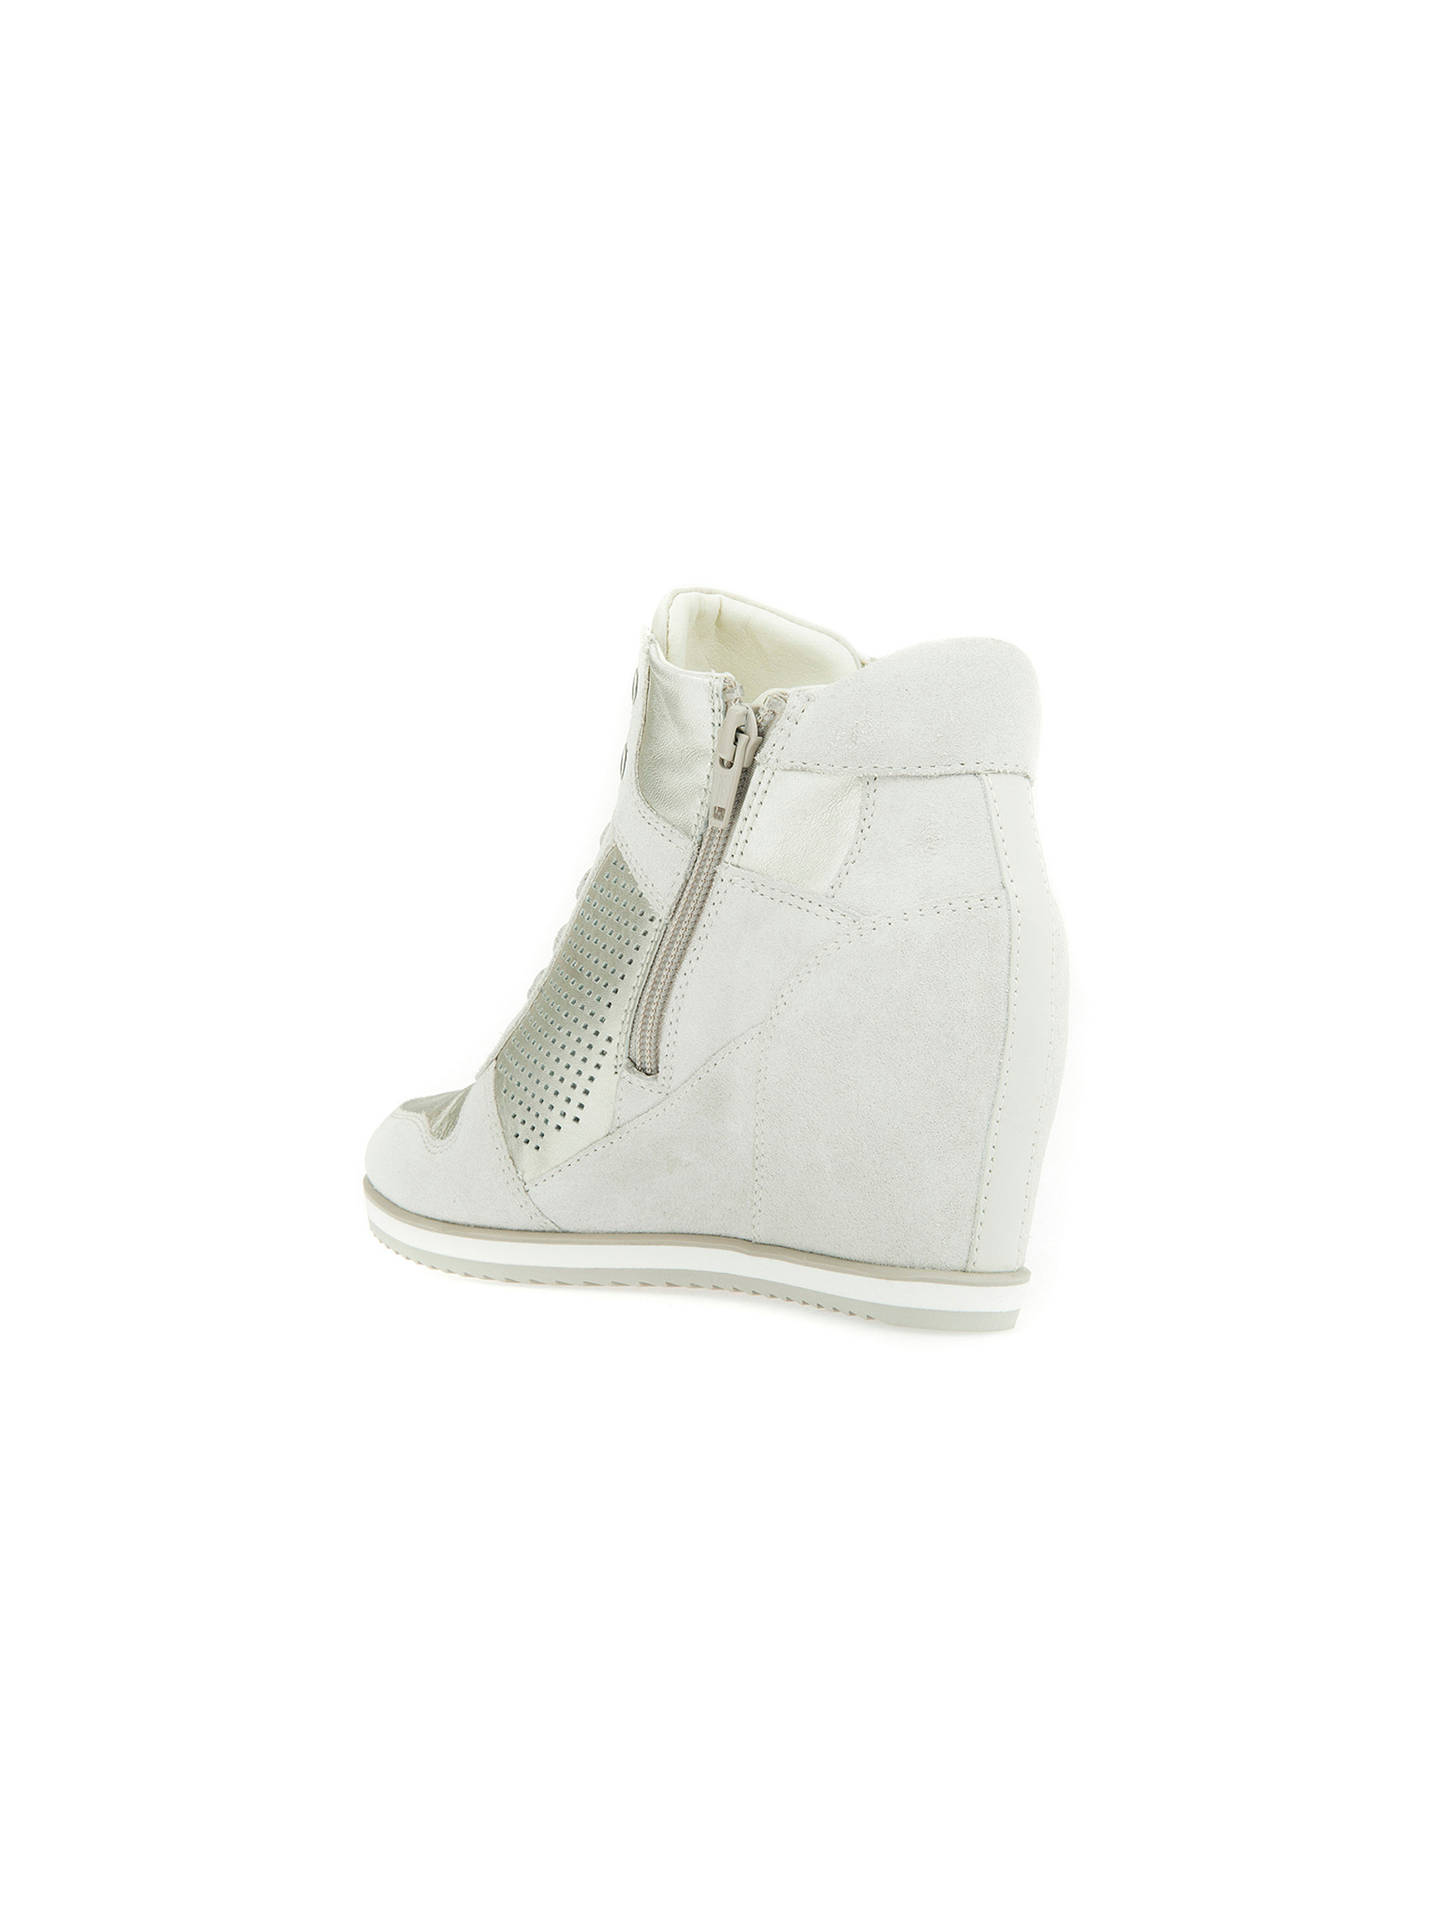 370d82cf36 ... Buy Geox Illusion Hidden Wedge Trainers, Off White, 3 Online at  johnlewis.com ...